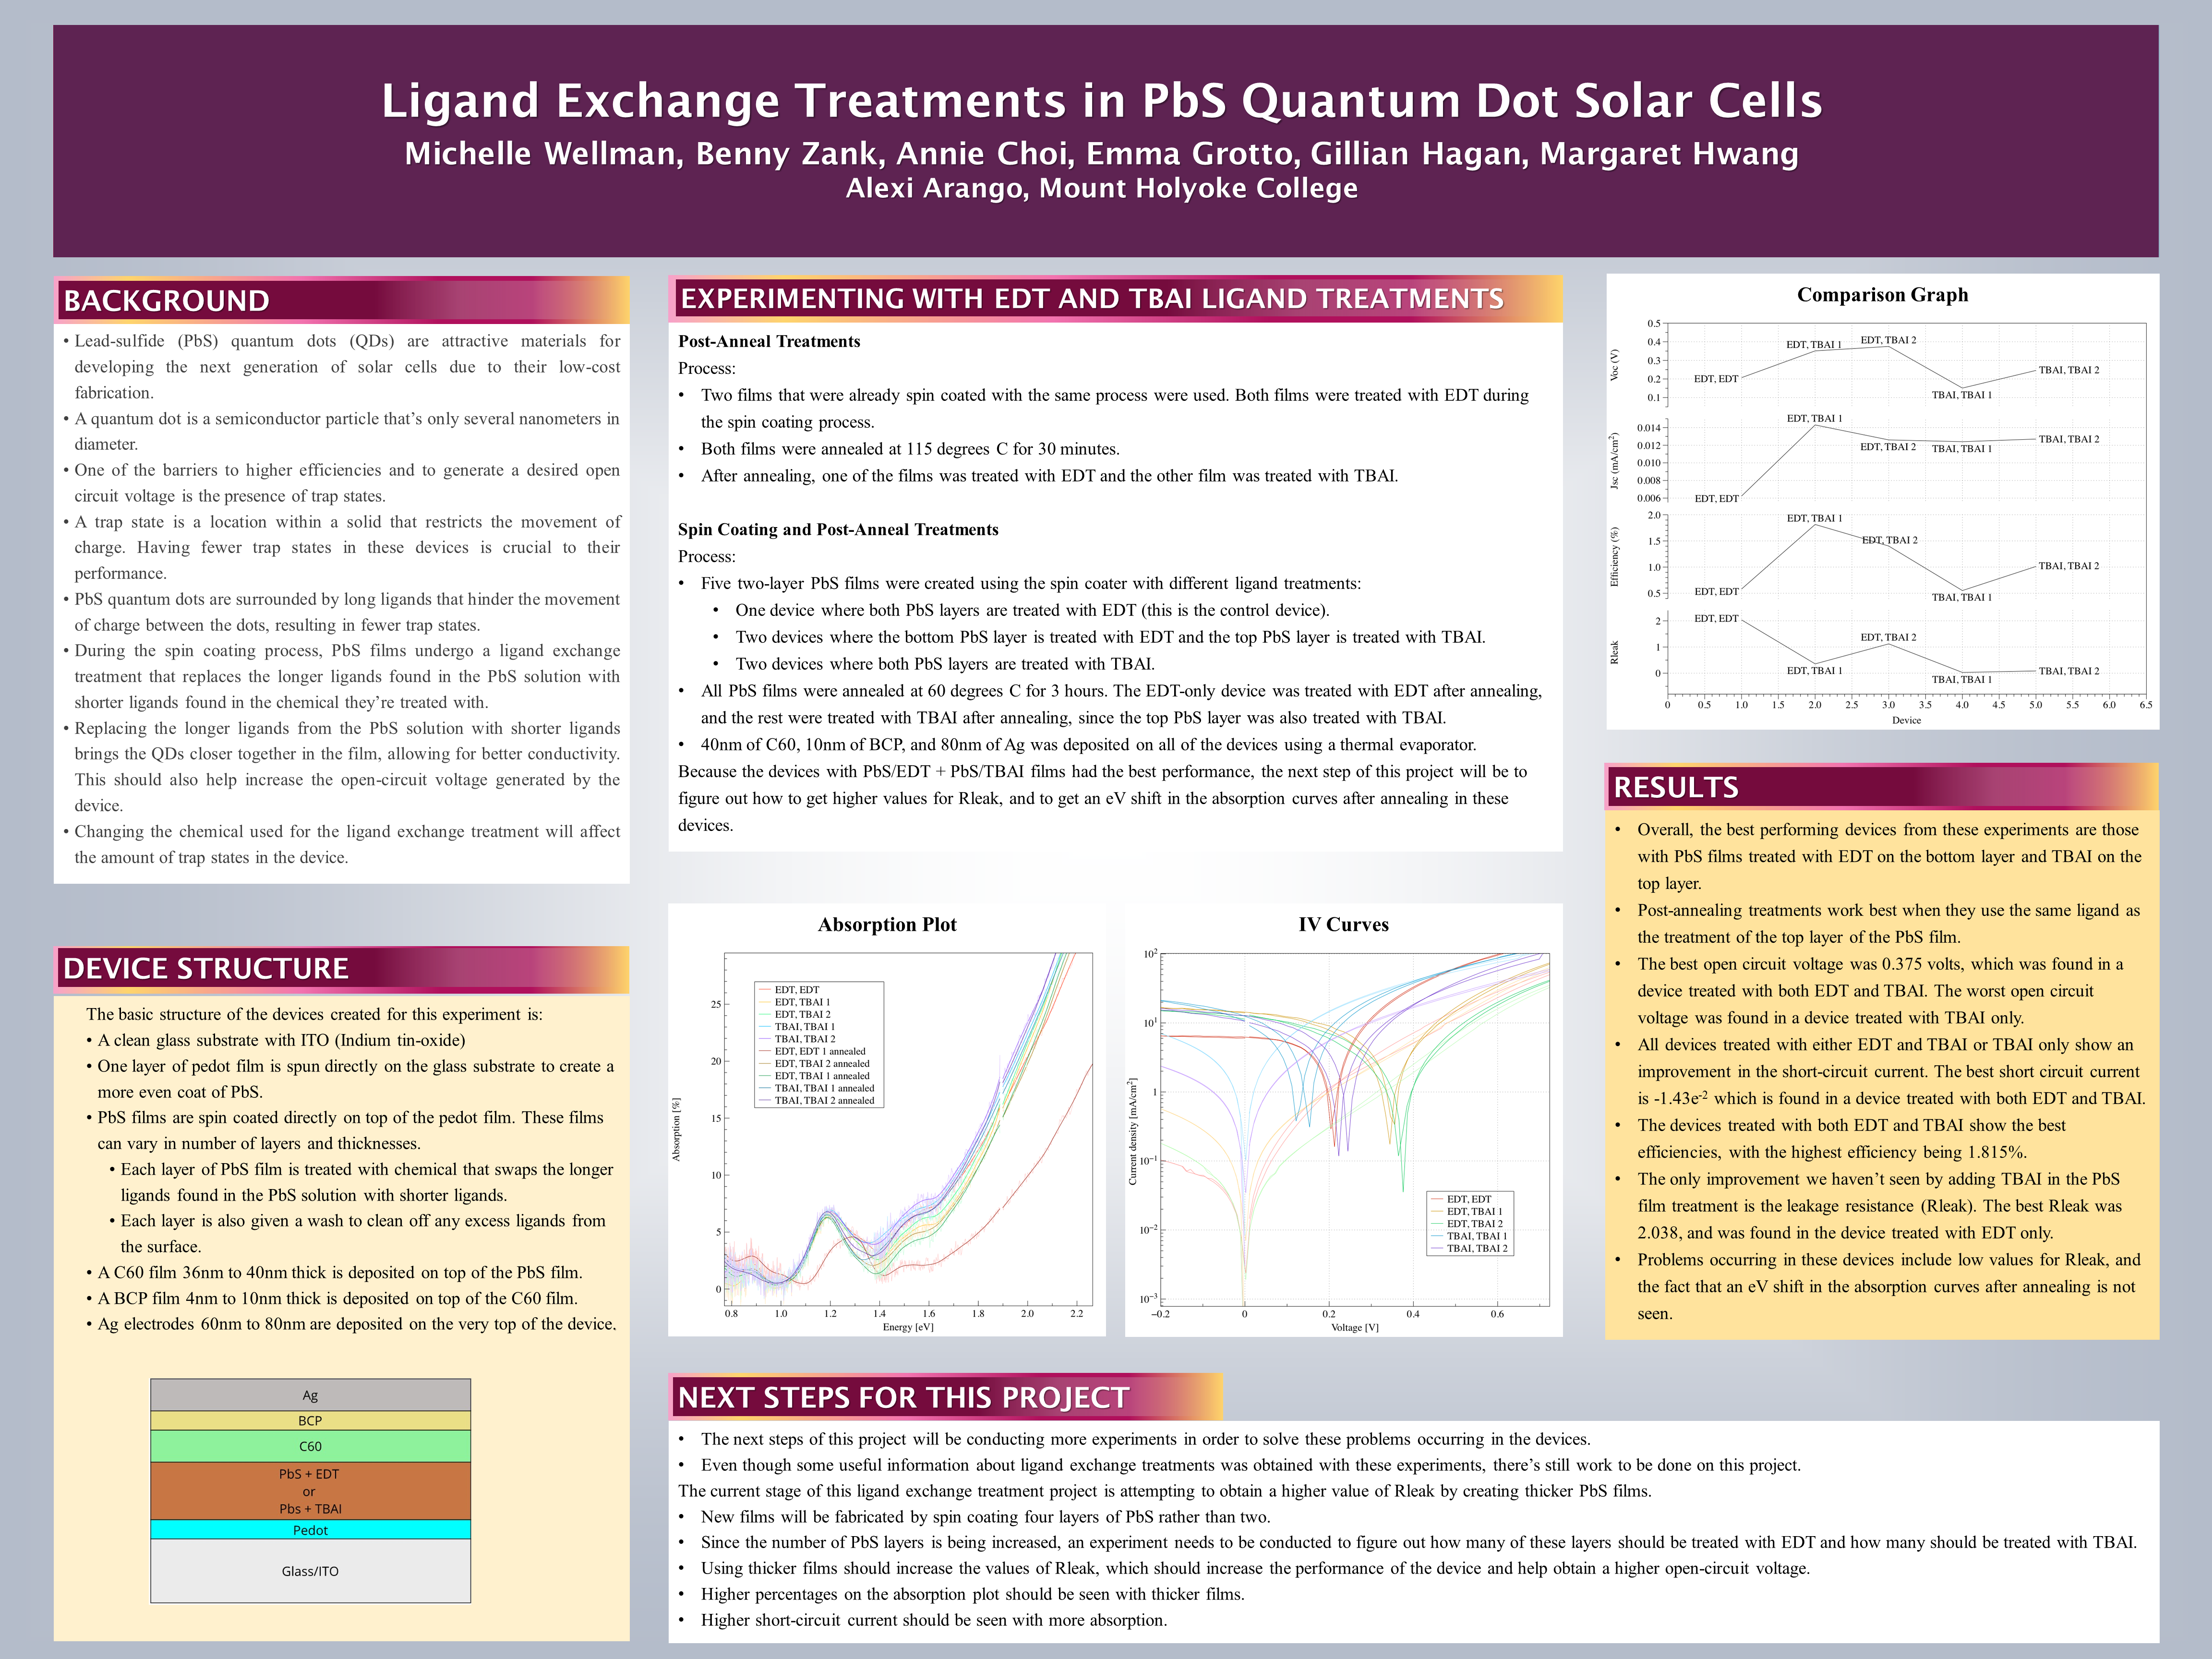 Ligand Exchange Treatments in PbS Quantum Dot Solar Cells